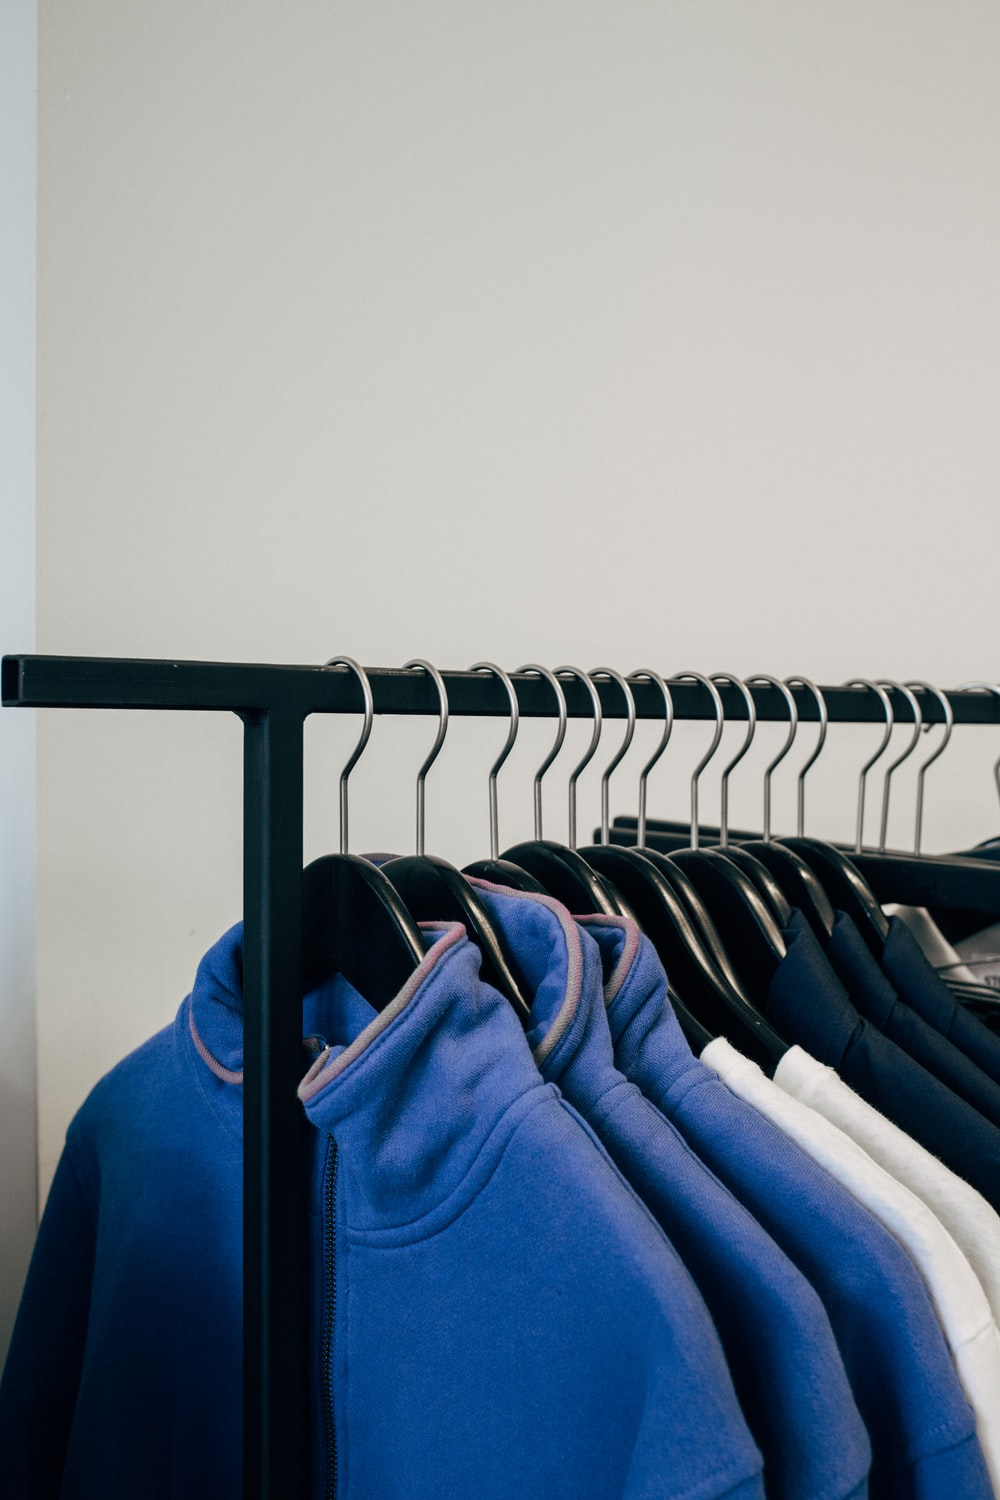 assorted-color shirt on rack